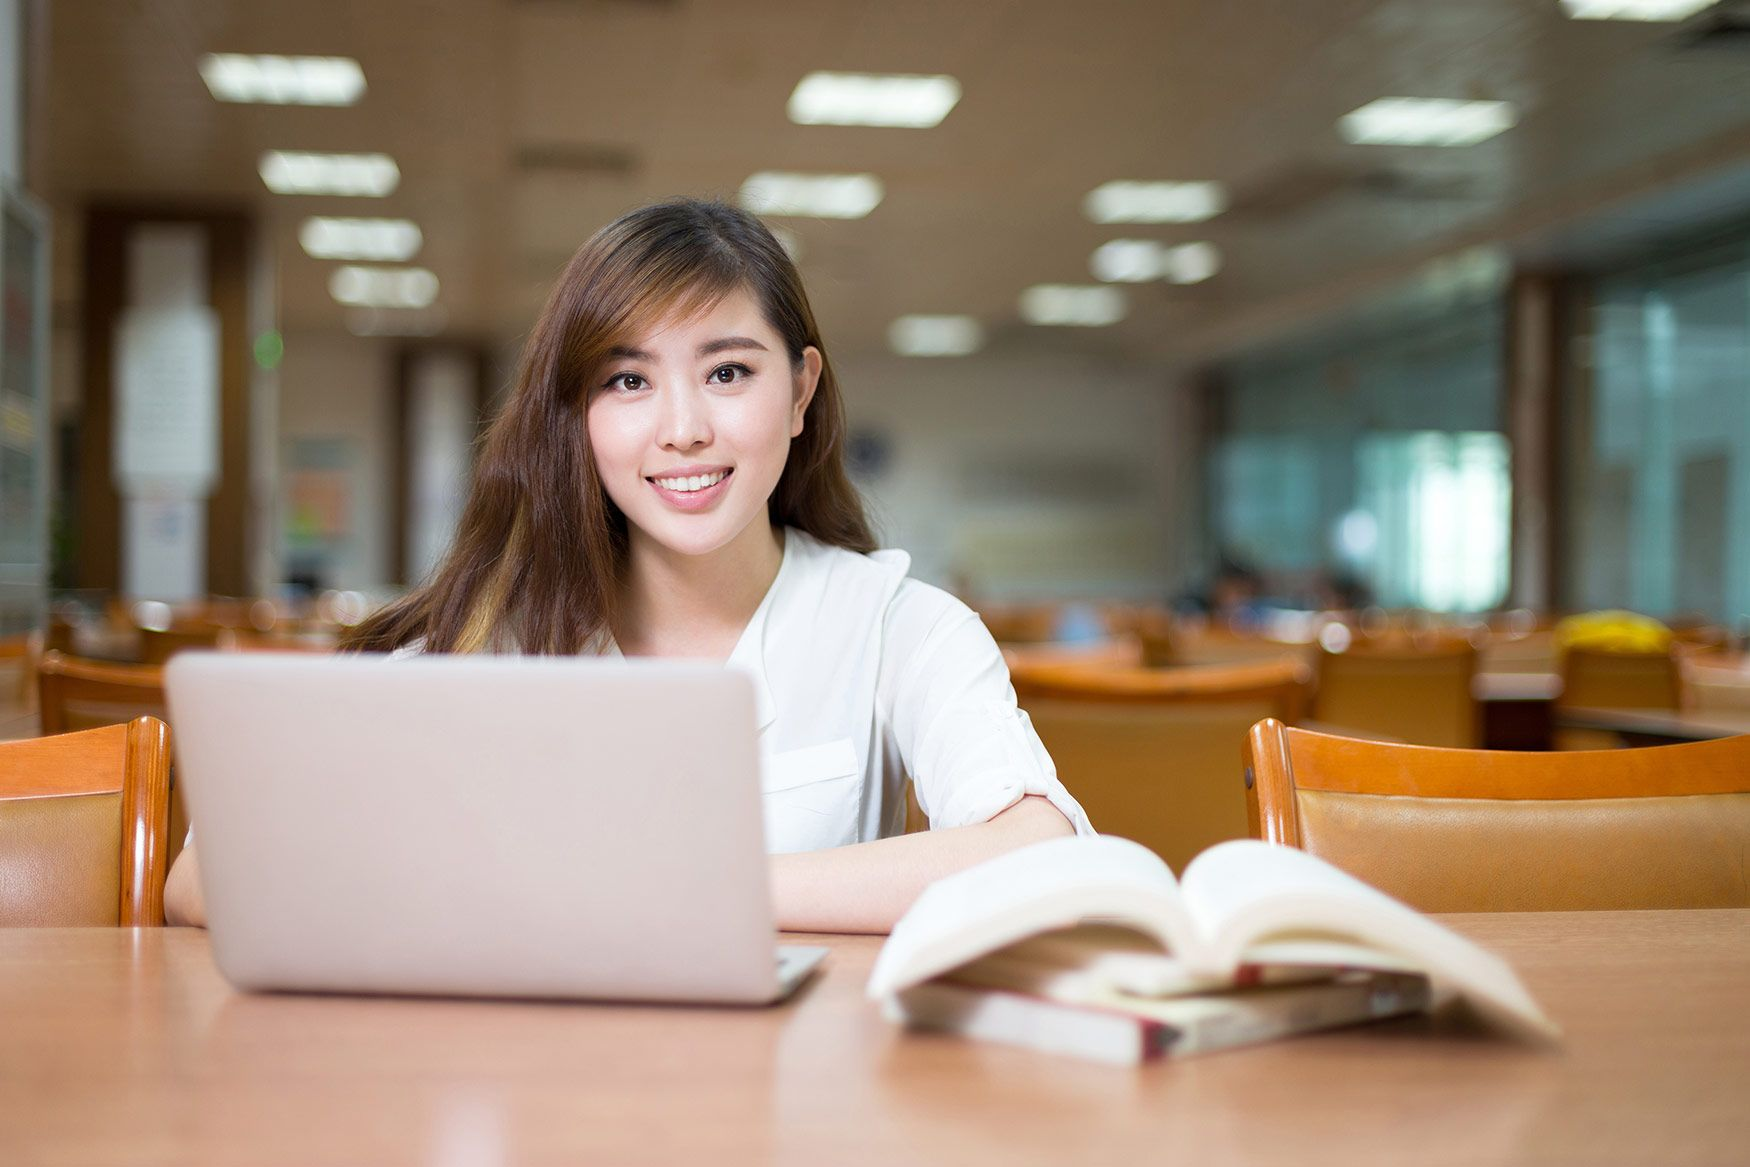 Dissertation consulting services reliable